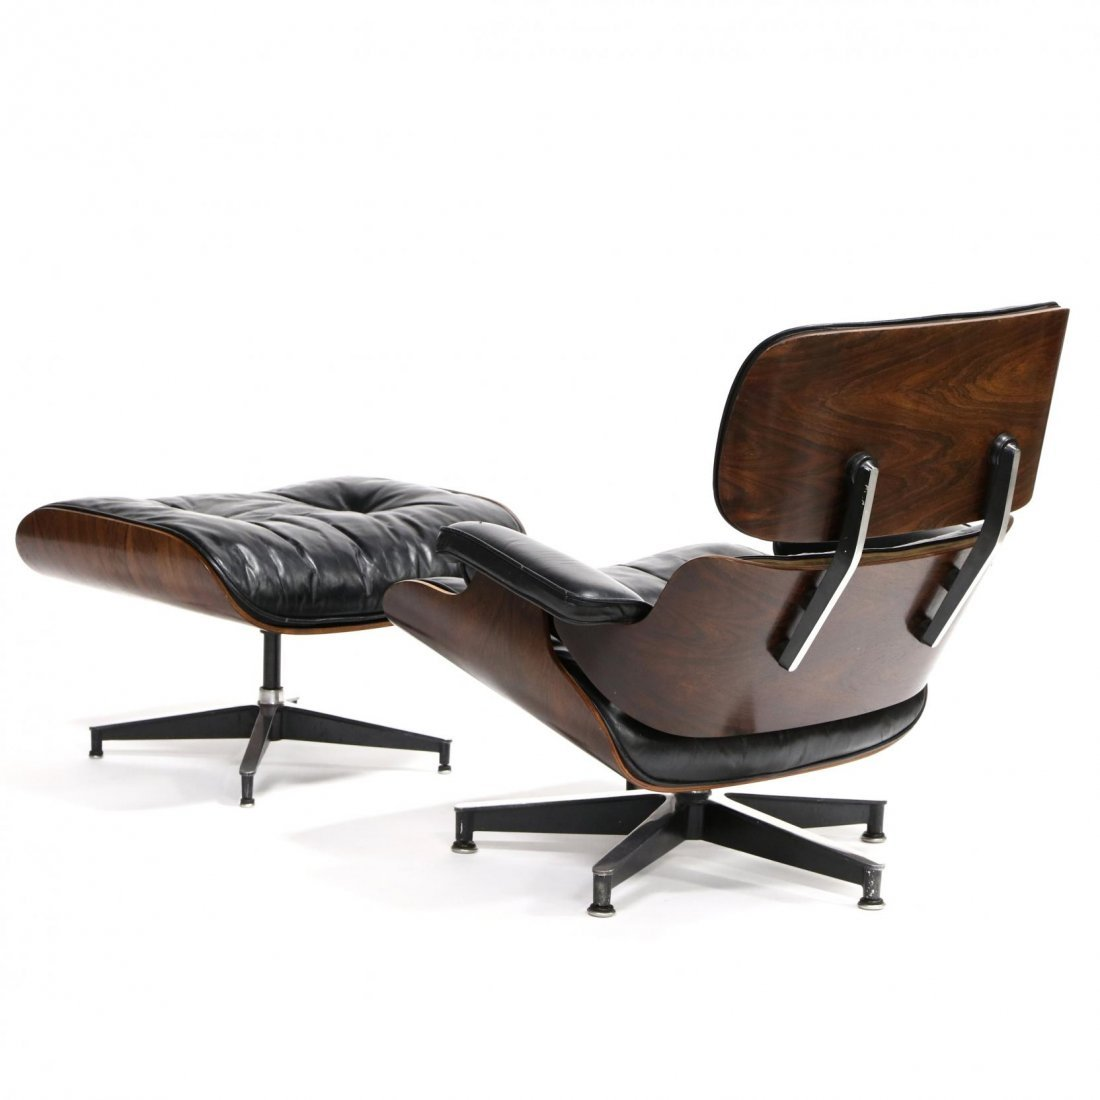 Charles Eames, 670/671 Vintage Lounge Chair and Ottoman - 4